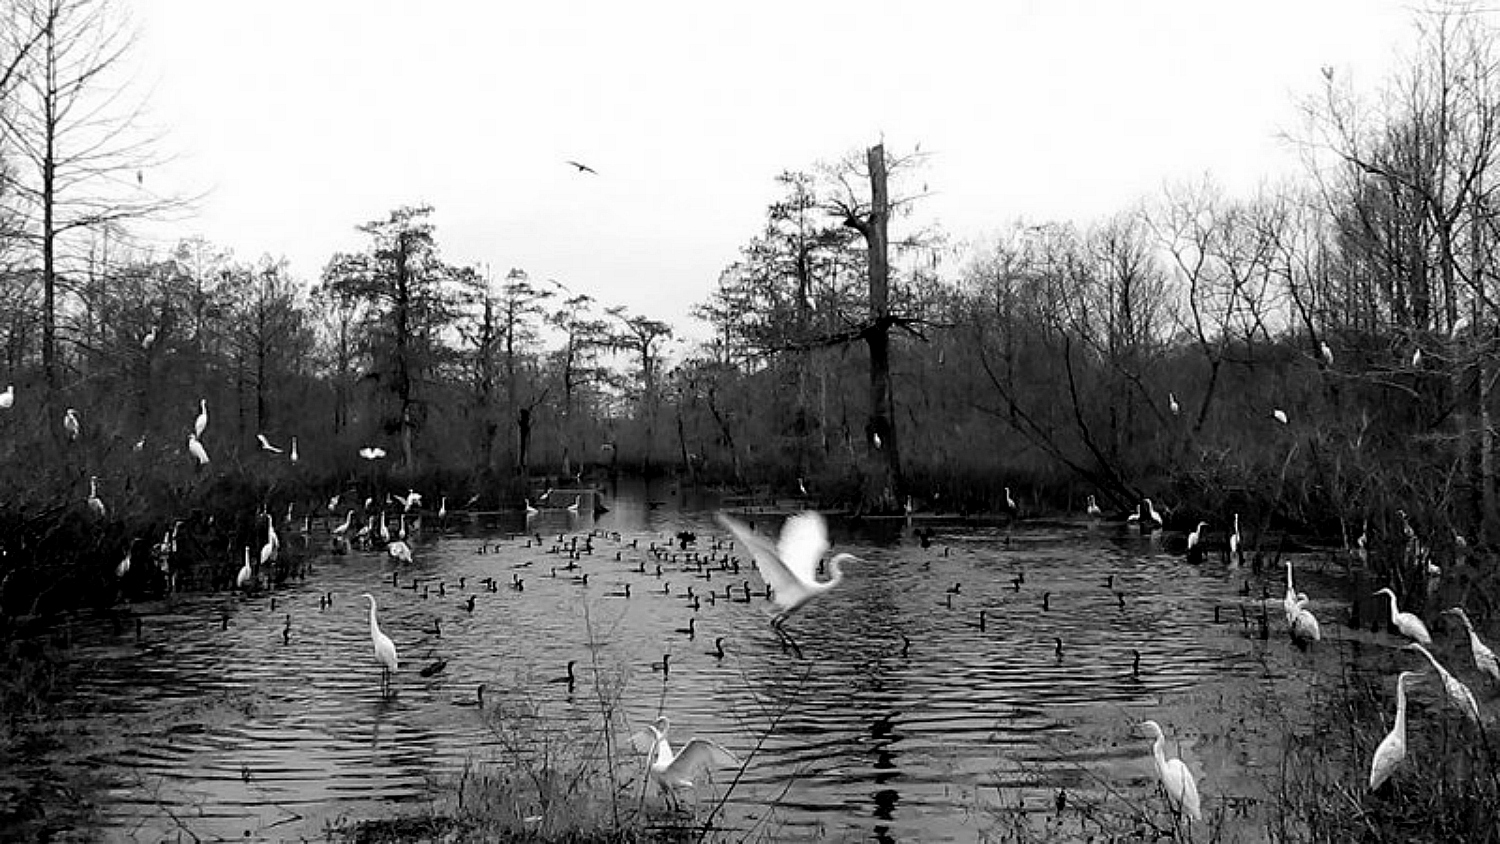 Swamp Cove of Egrets & Cormorants